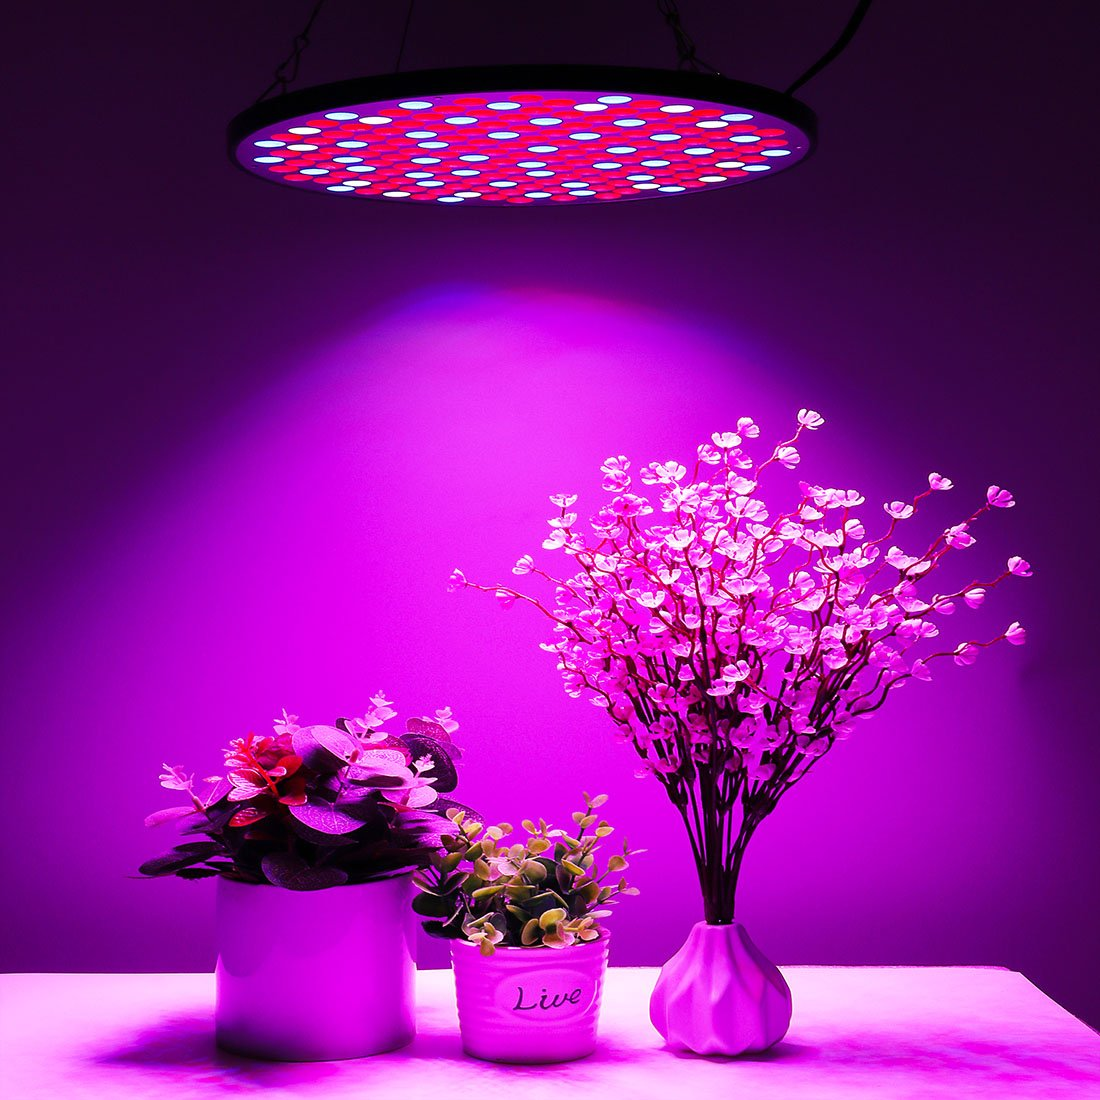 KINGBO 50W UFO LED Grow Light Panel Full Spectrum with Switch for Indoor Plants Seeding Growing and flowering. by KINGBO LED (Image #2)